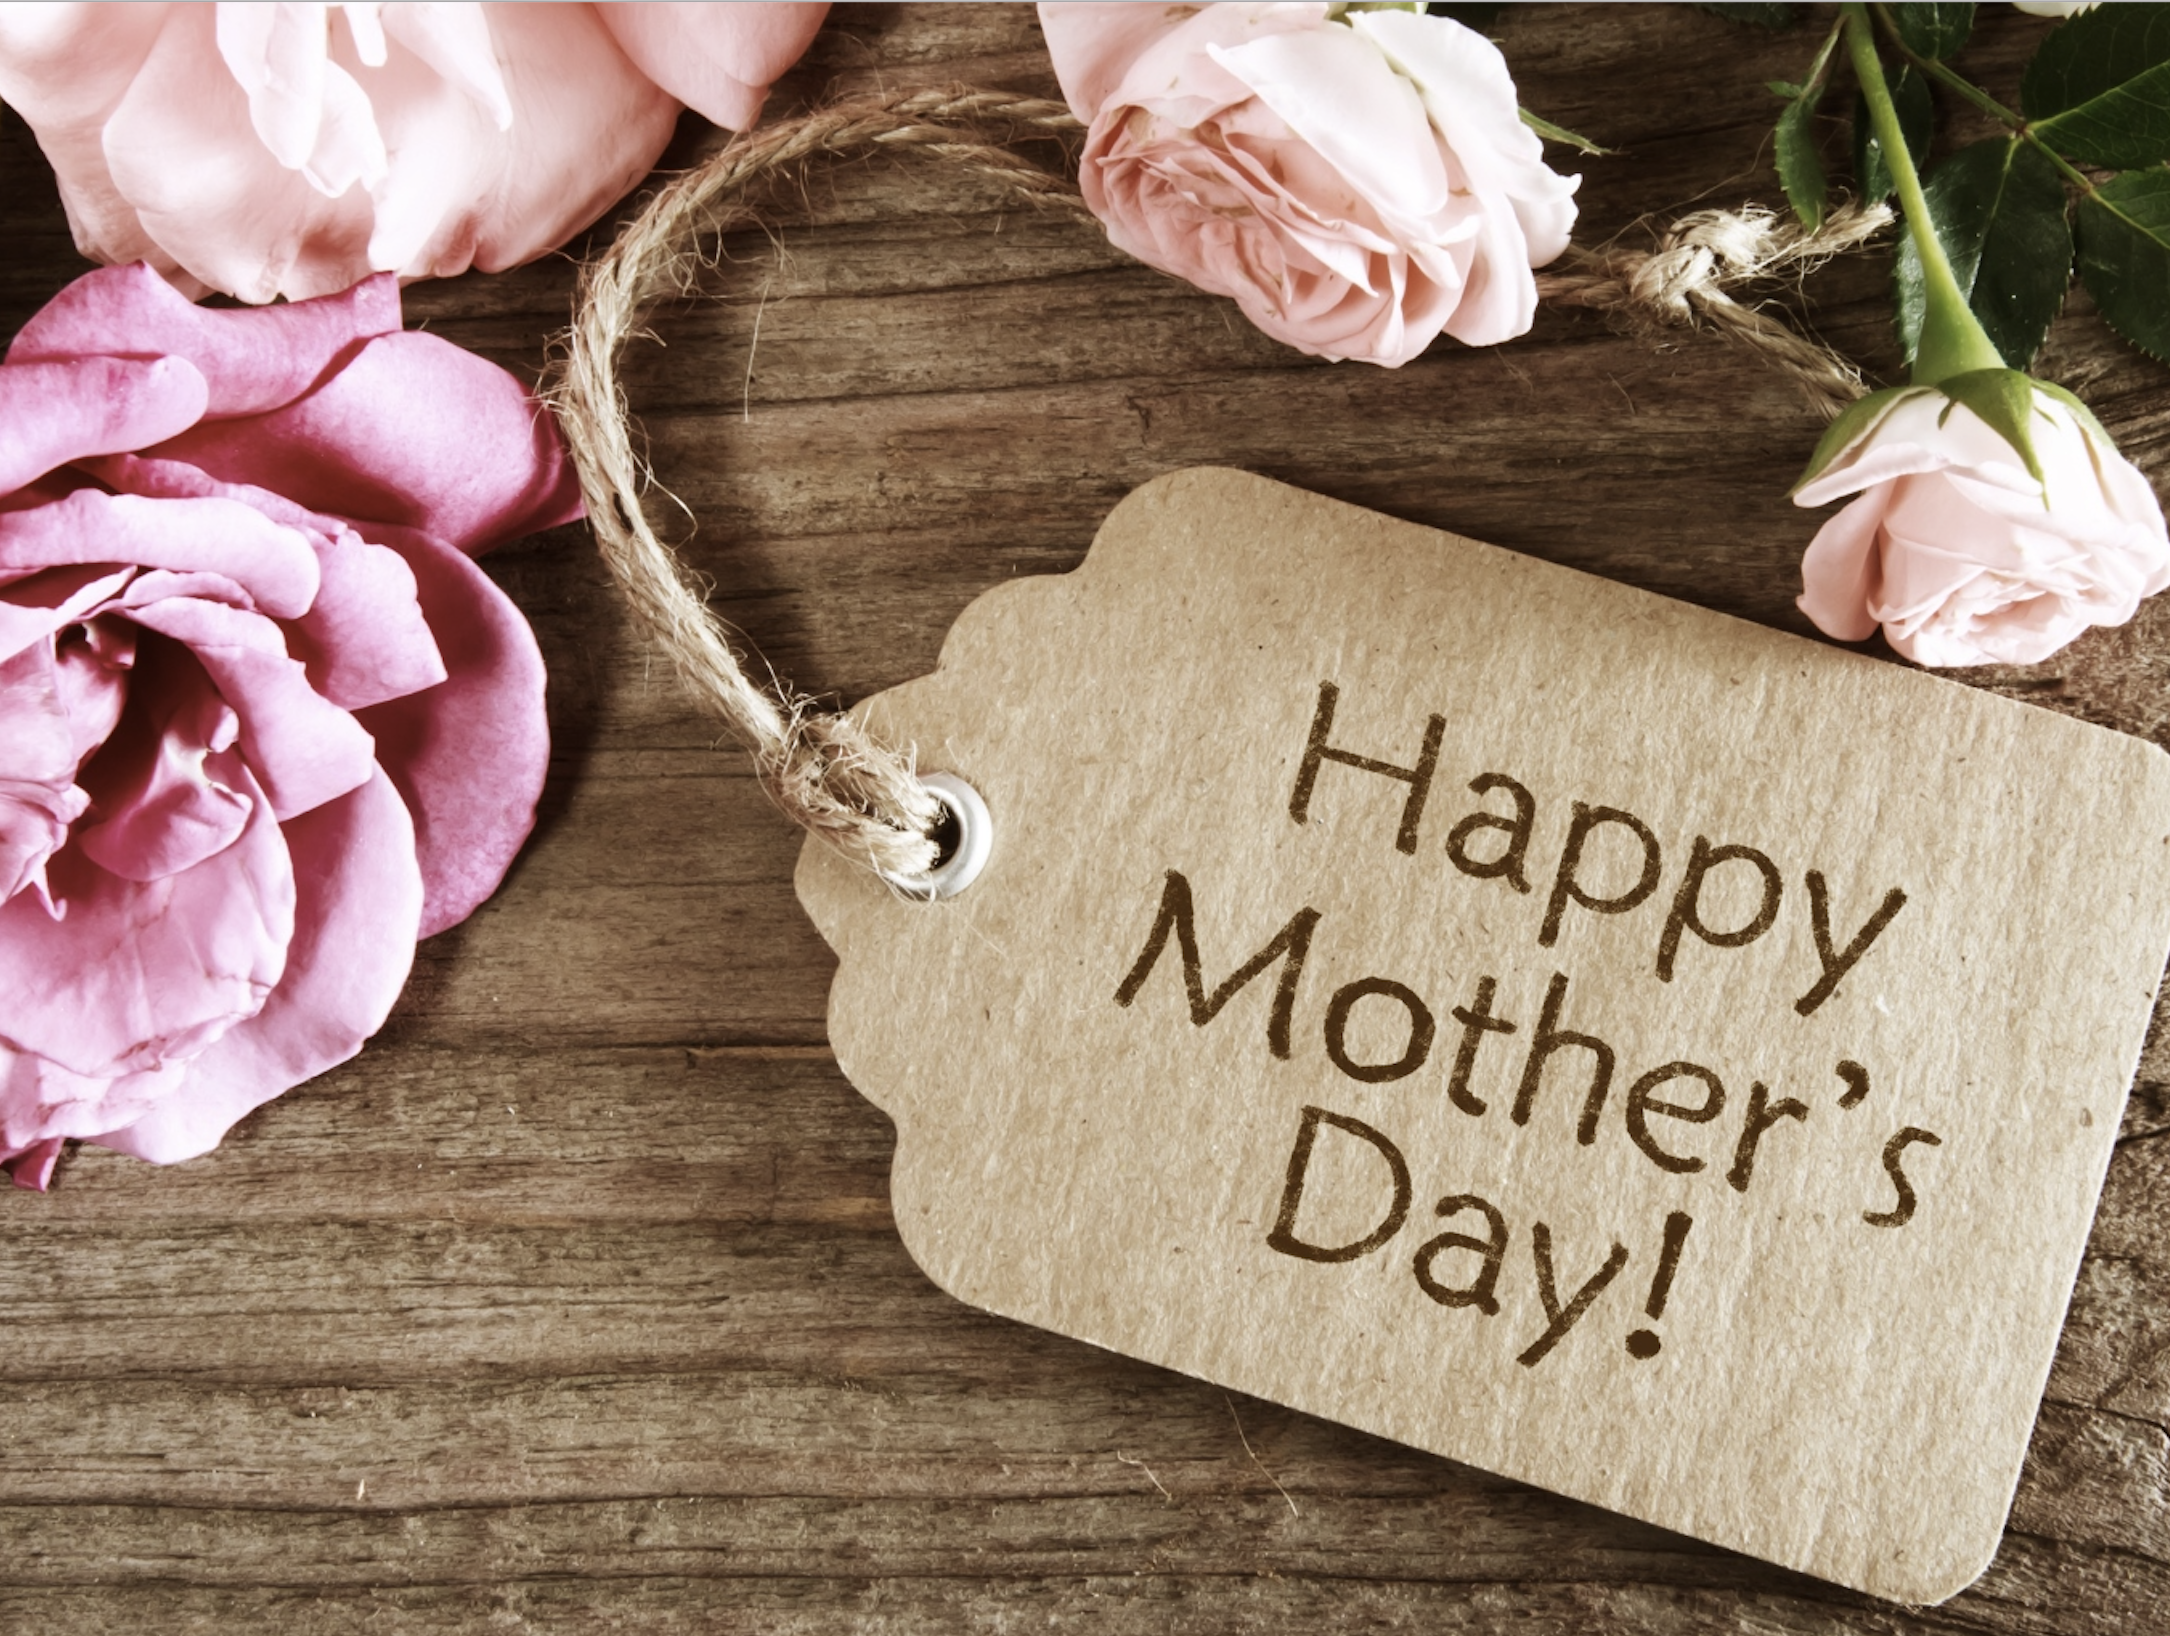 Mother's Day - 5/13/18